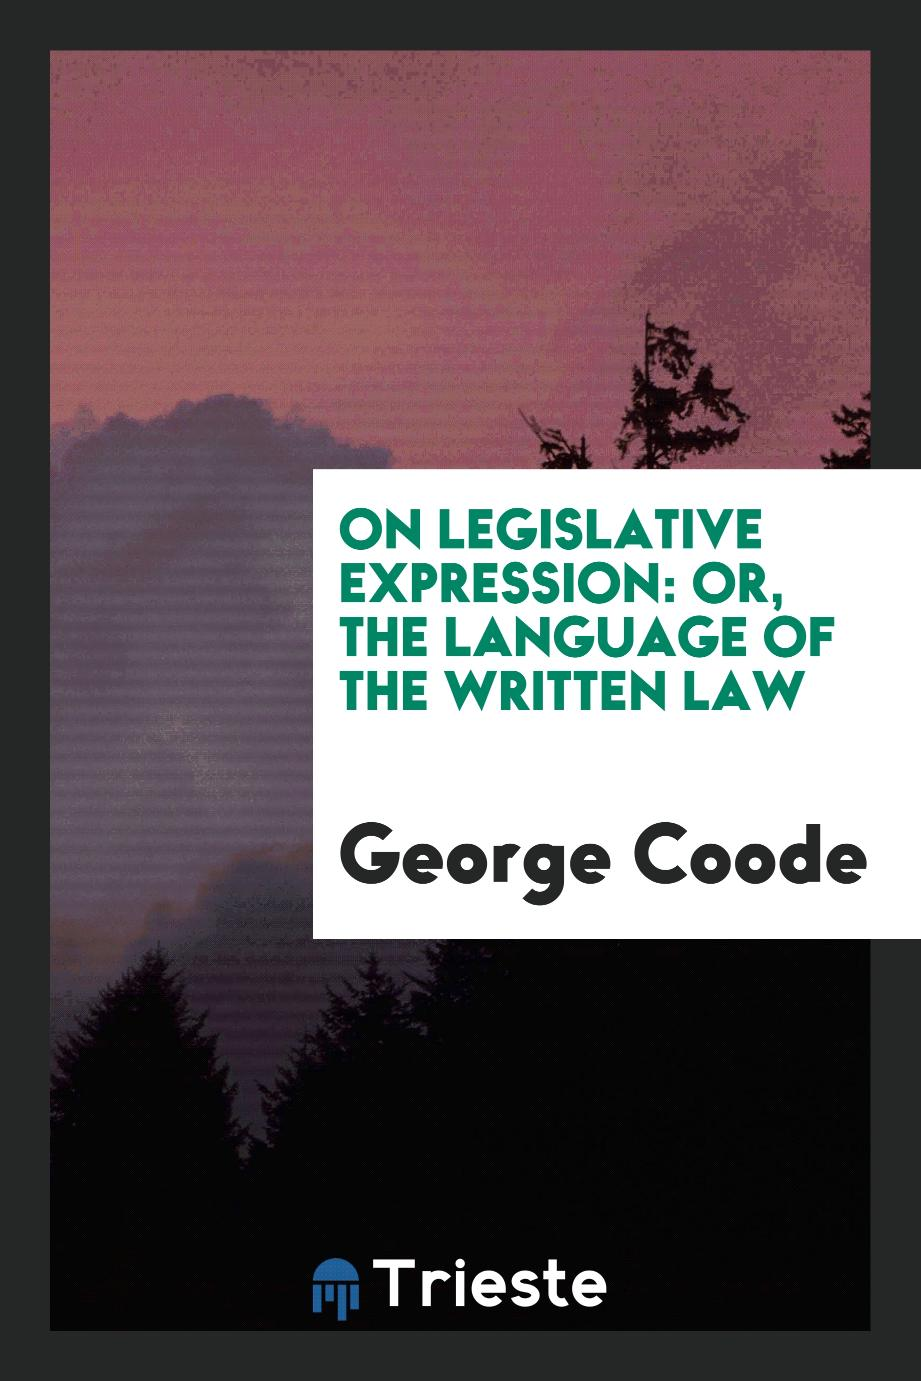 On Legislative Expression: or, The Language of the Written Law